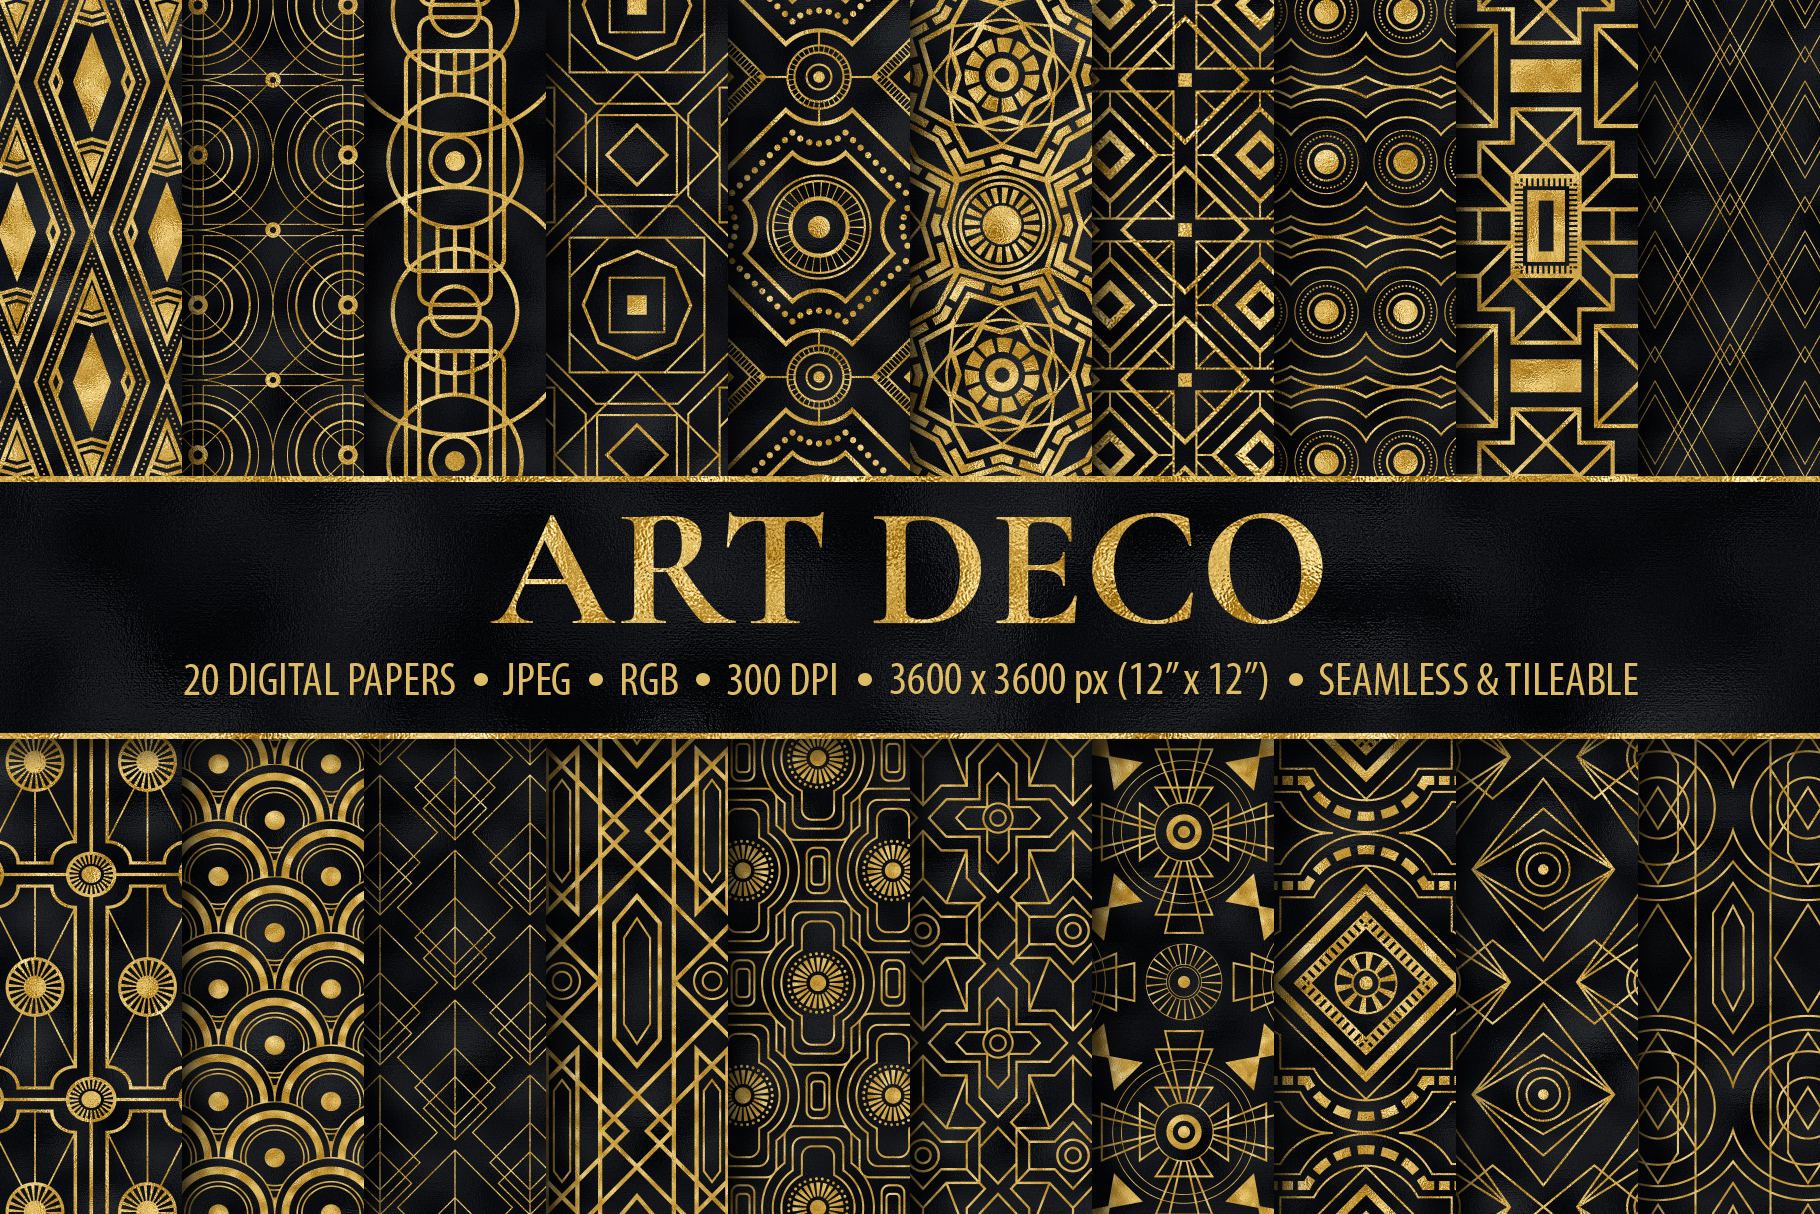 Seamless Art Deco Patterns Black And Gold Digital Papers